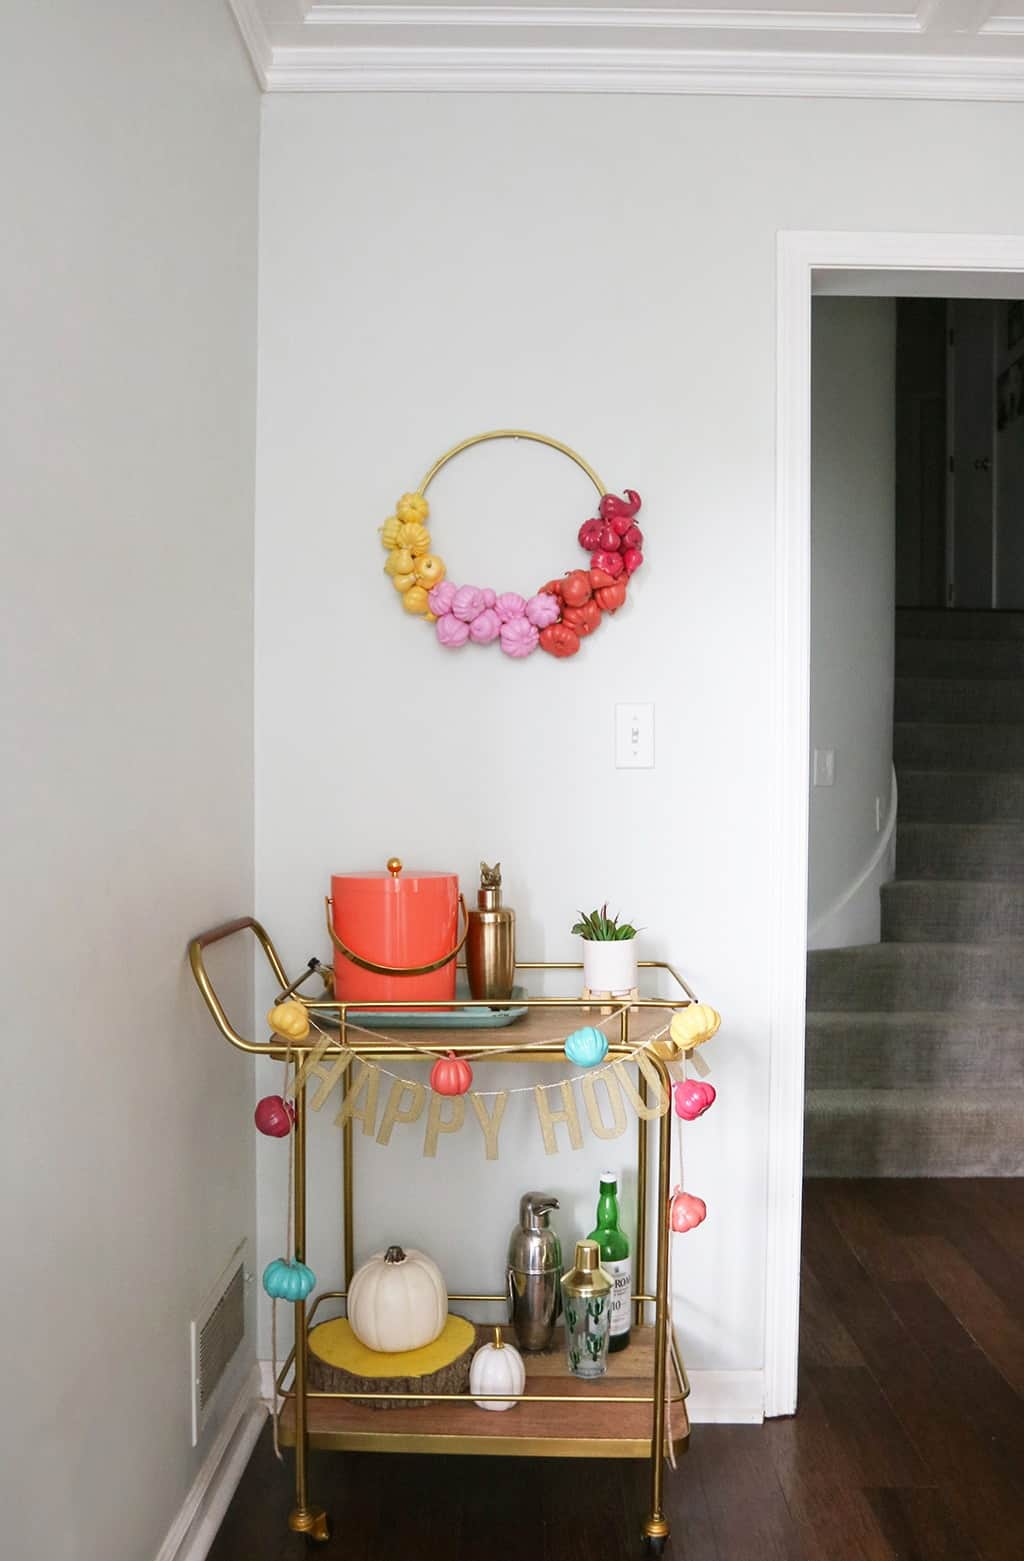 DIY pumpkin wreath and banner — I highly recommend them as a fun and affordable way to add some color and personality to your fall decor!